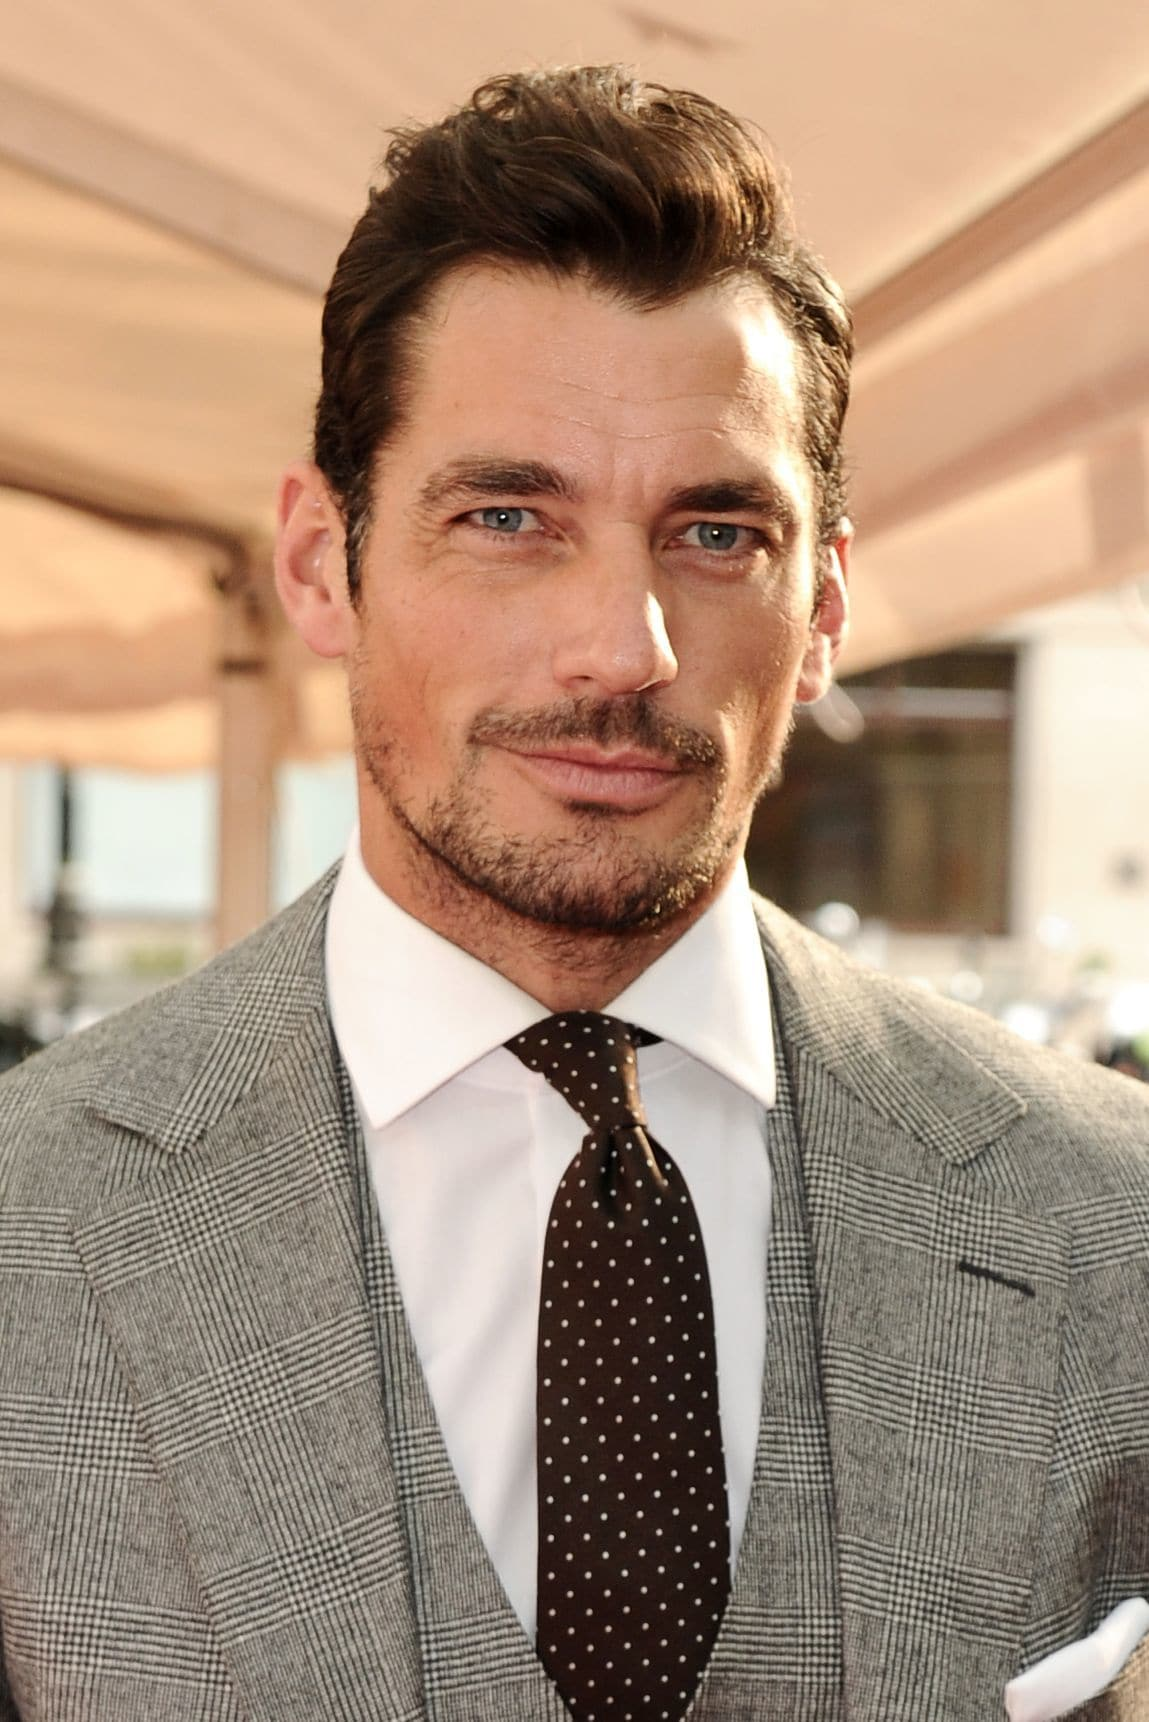 Hairstyles for receding hairline: Headshot of David Gandy with brown hair in a short brush back hairstyle